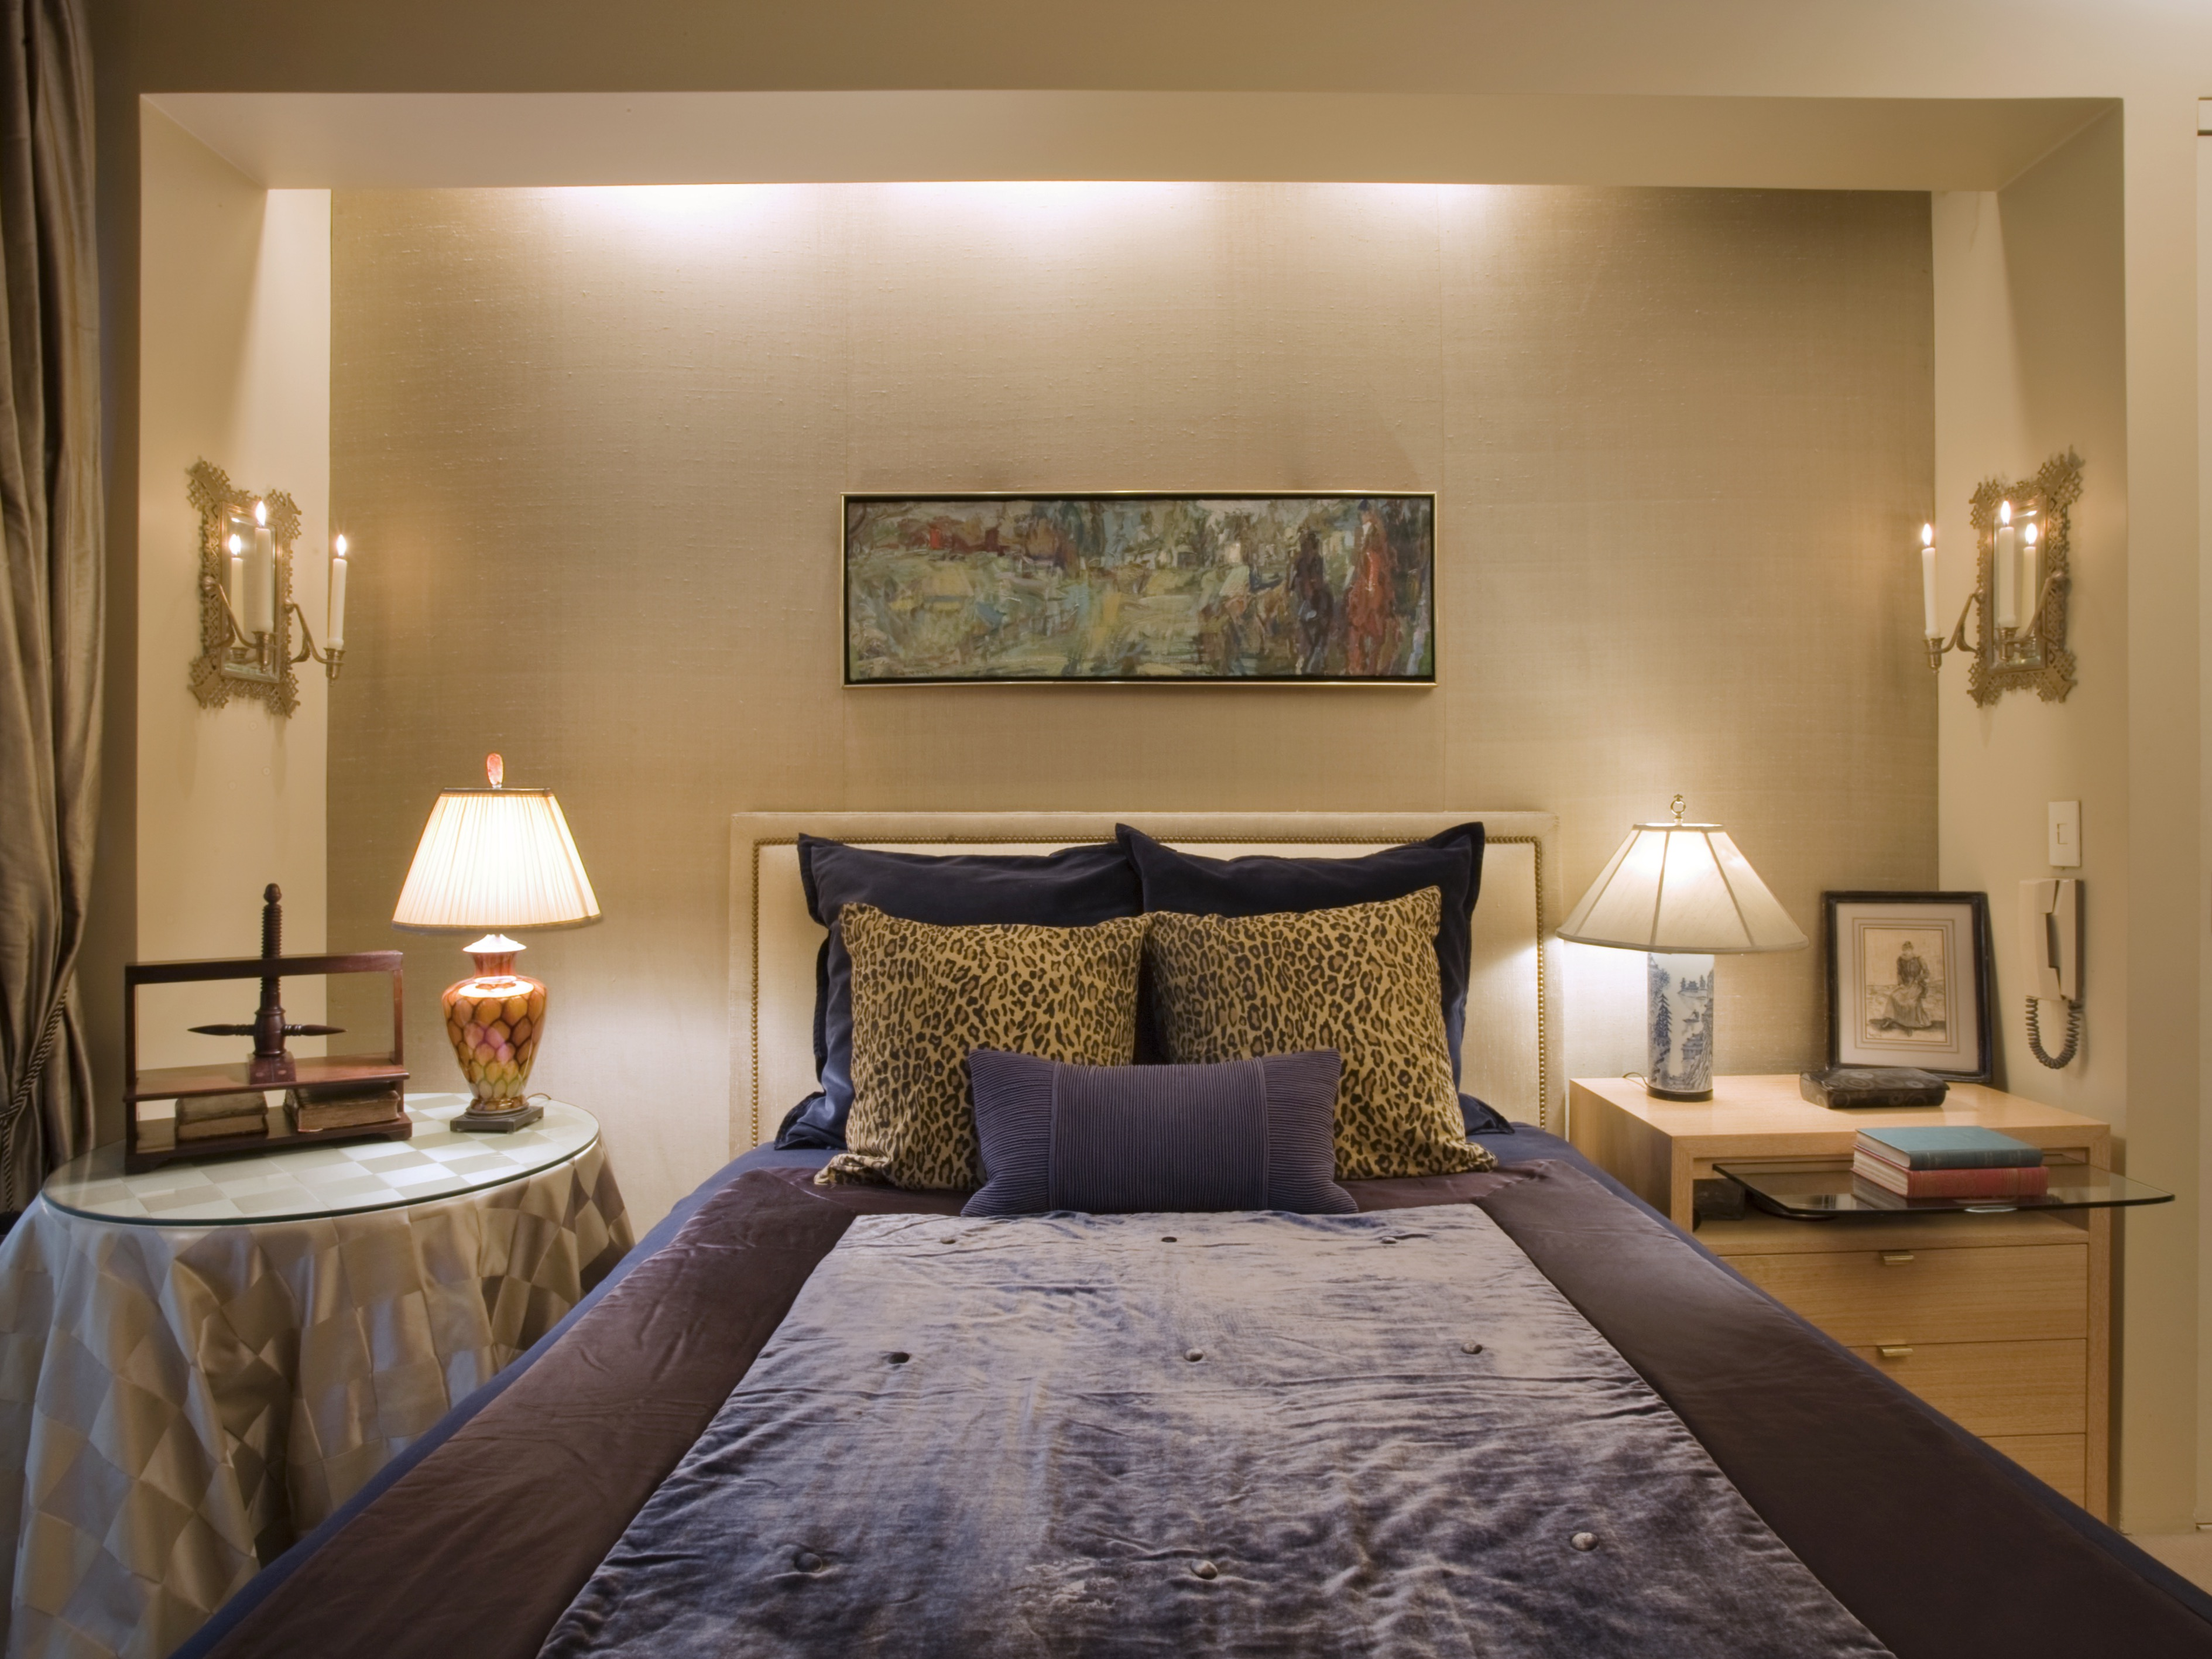 Hotel Style Upholstered Headboard Bedroom Design (Image 18 of 25)